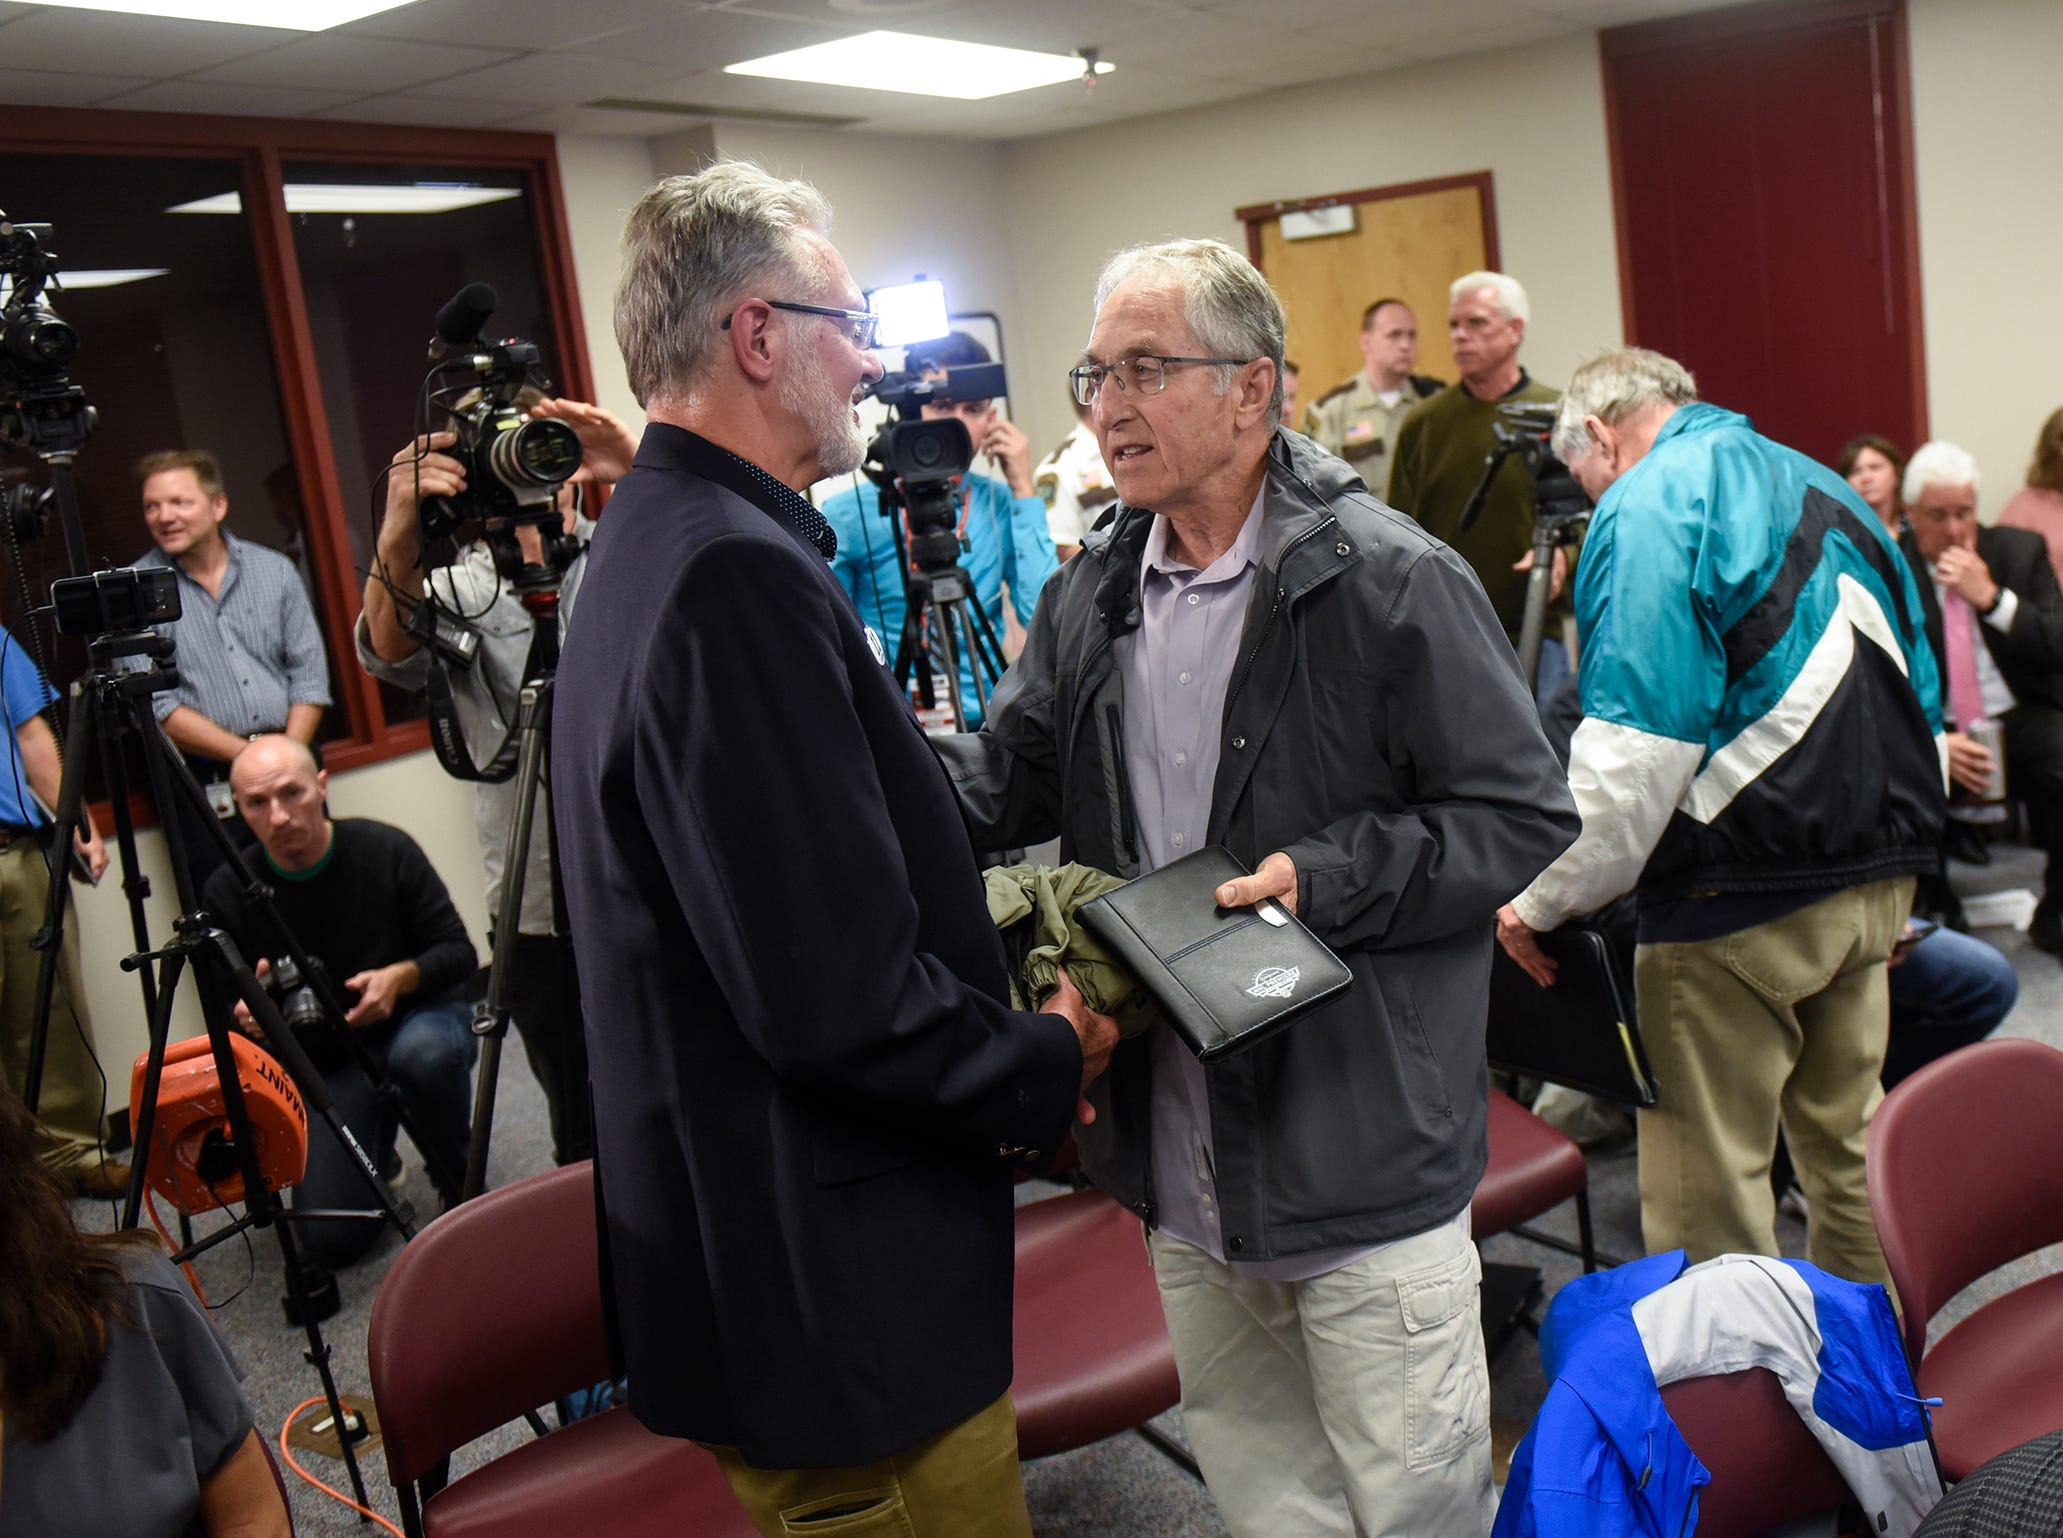 Former FBI investigator Al Garber talks with Jerry Wetterling following a press conference on the release of documents in the Jacob Wetterling case Thursday, Sept. 20, in St. Cloud.